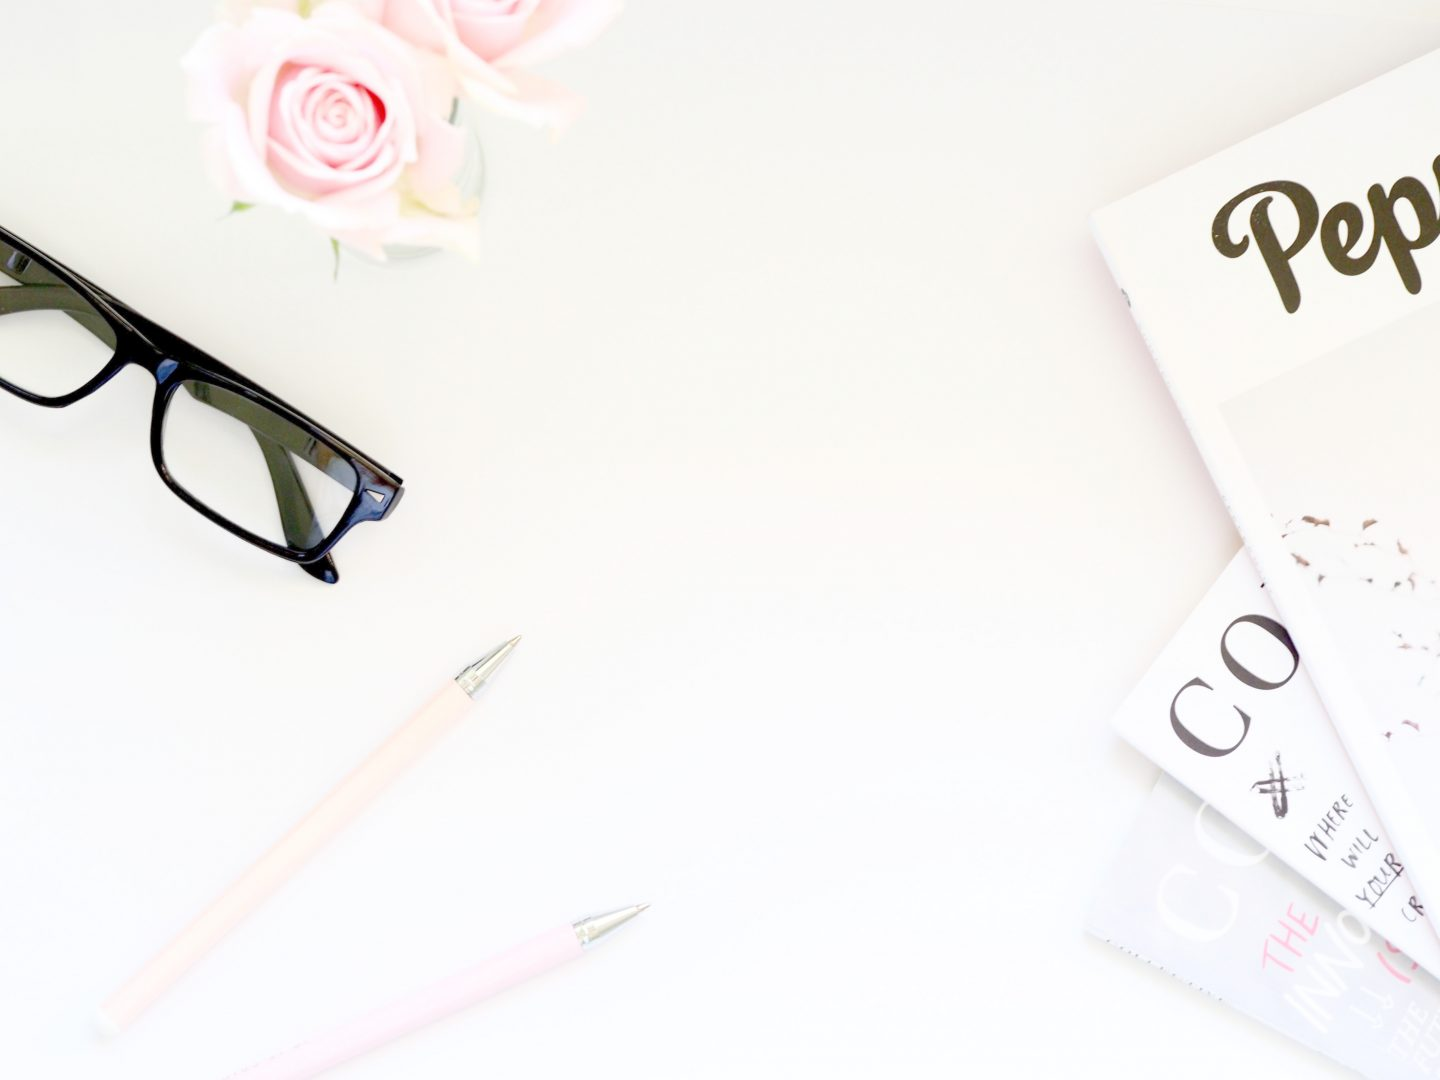 HAYLEYXMARTIN | HOW TO LIVE A HAPPY LIFE IN YOUR 20s